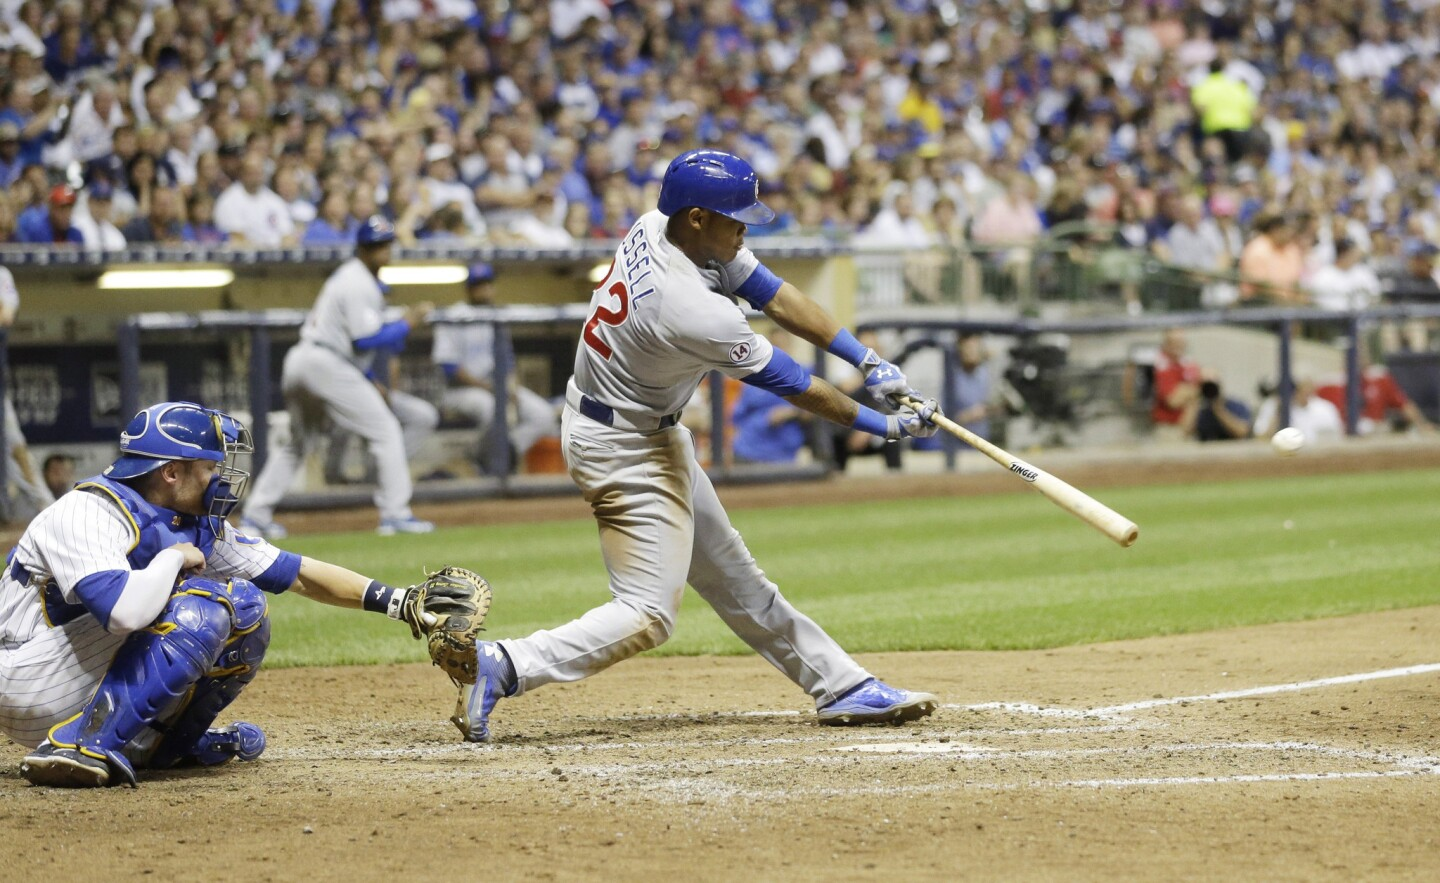 The Cubs' Addison Russell hits an RBI single during the sixth inning.